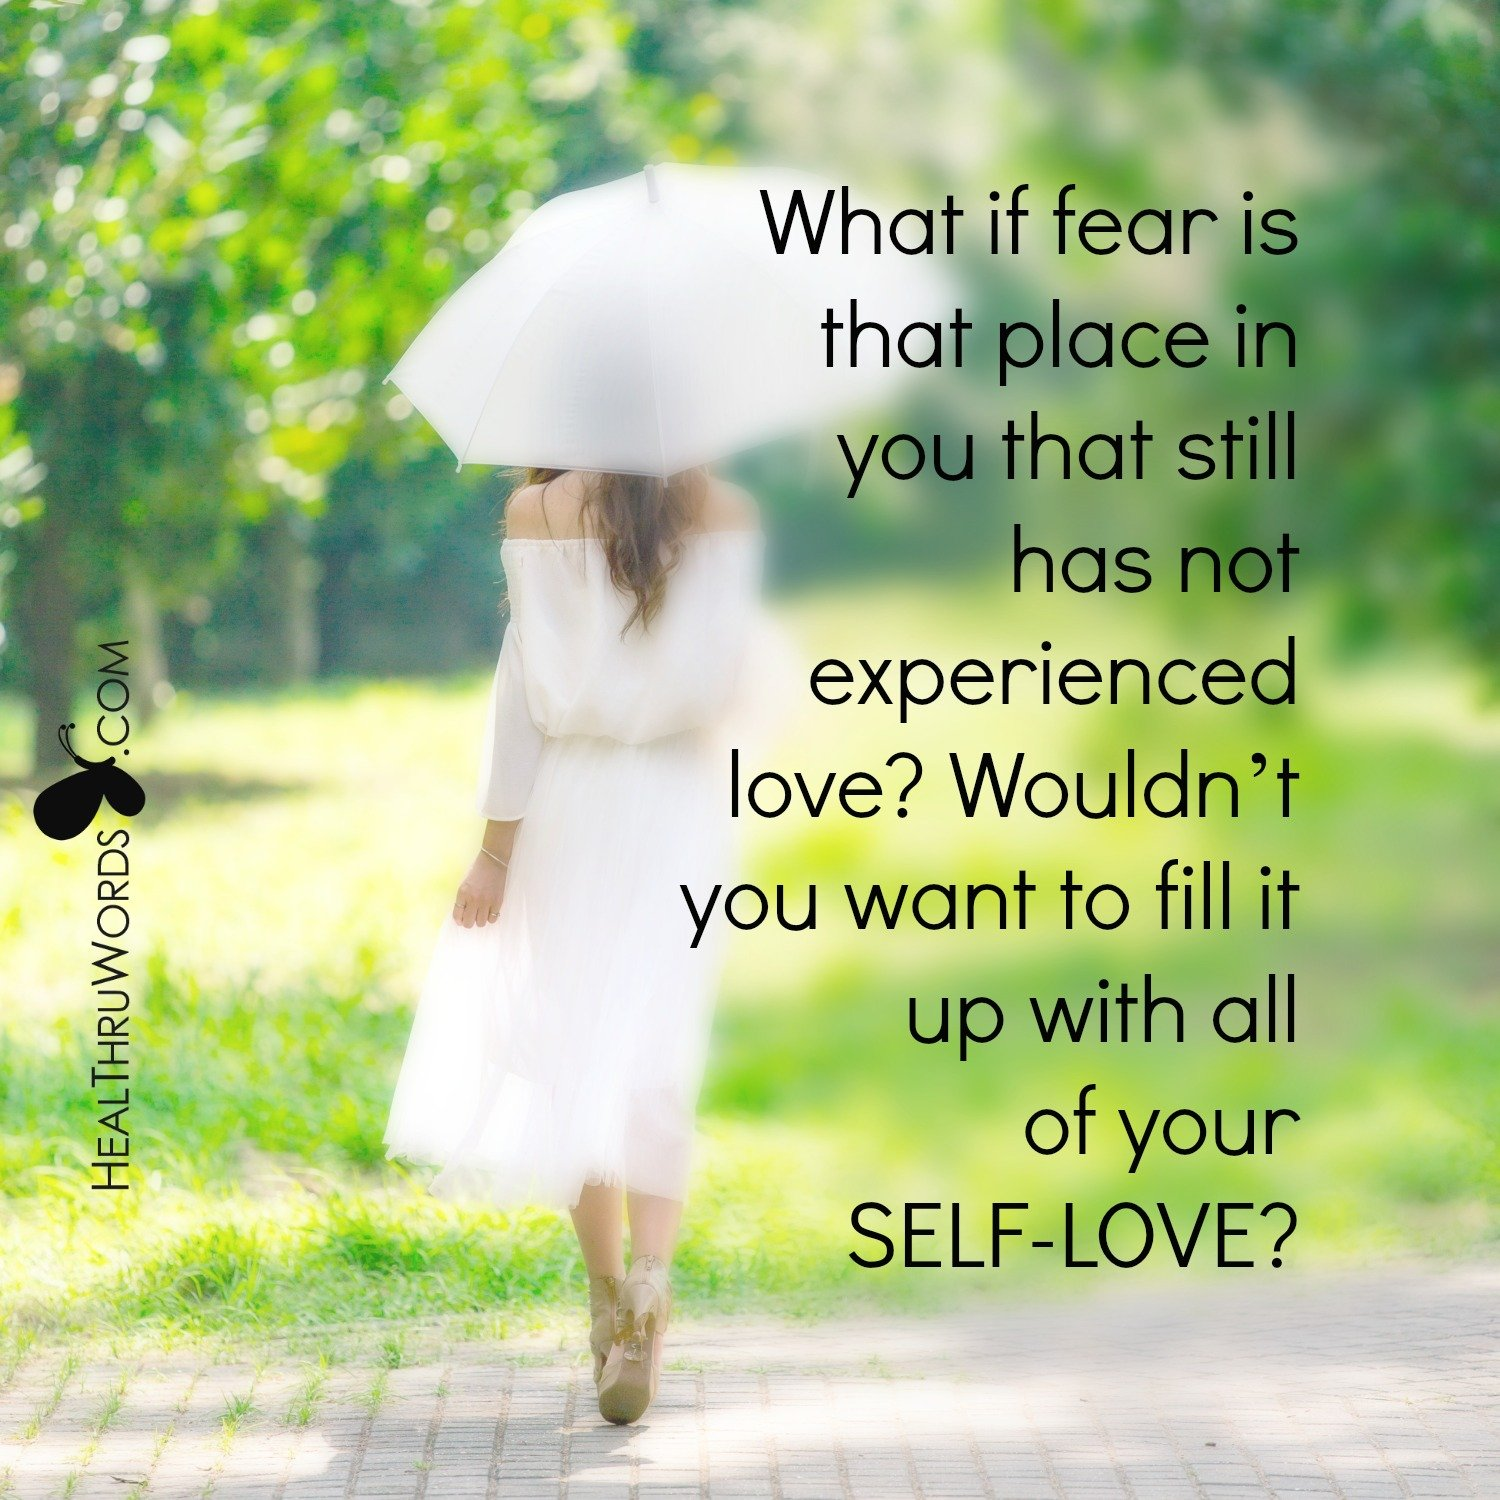 Inspirational Image: Your Self-Love